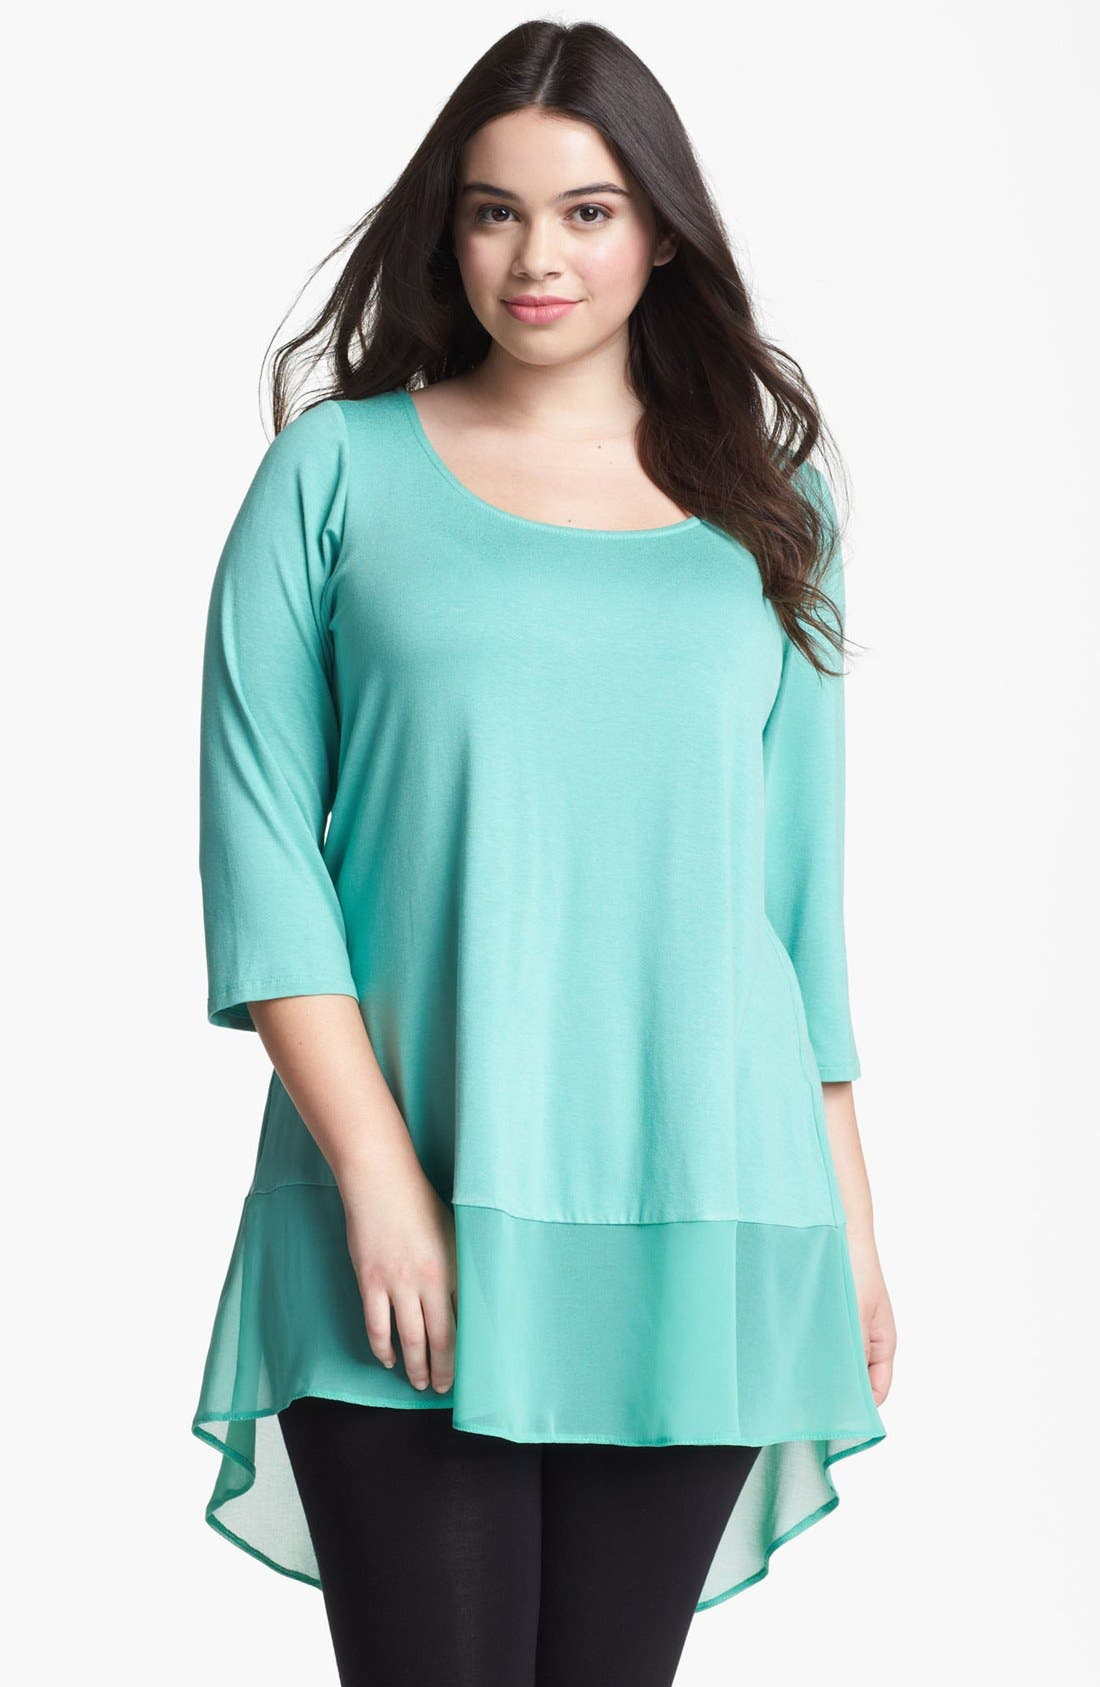 Alternate Image 1 Selected - Evans 'Lily' Chiffon Hem High/Low Top (Plus Size)